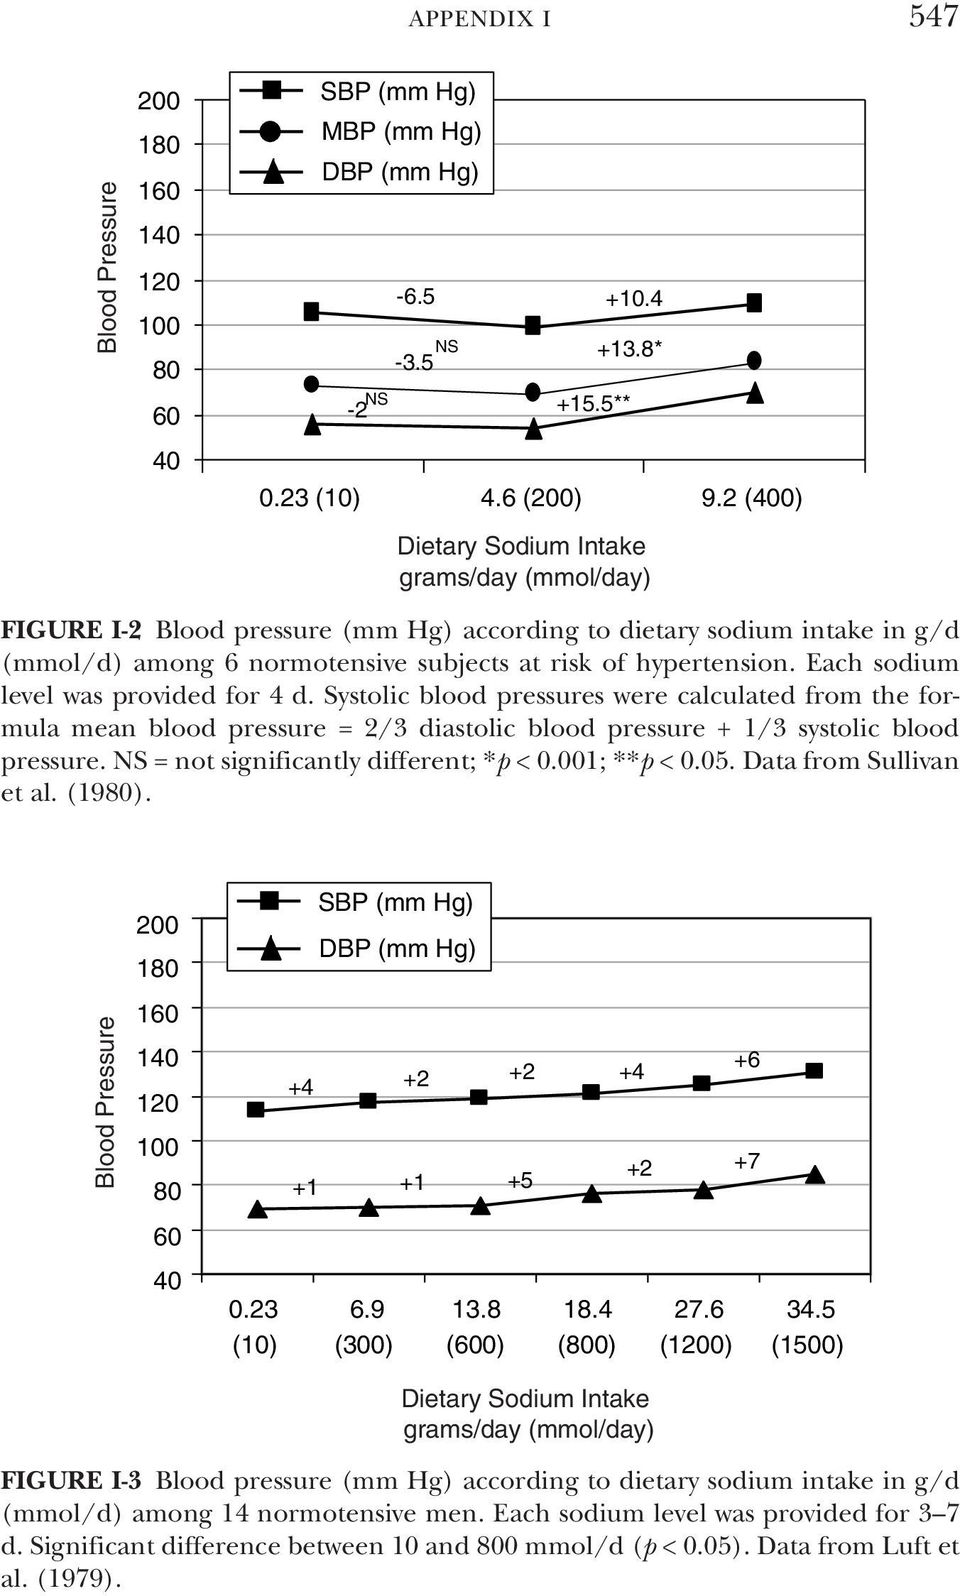 Systolic blood pressures were calculated from the formula mean blood pressure = 2/3 diastolic blood pressure + 1/3 systolic blood pressure. NS = not significantly different; *p < 0.001; **p < 0.05.